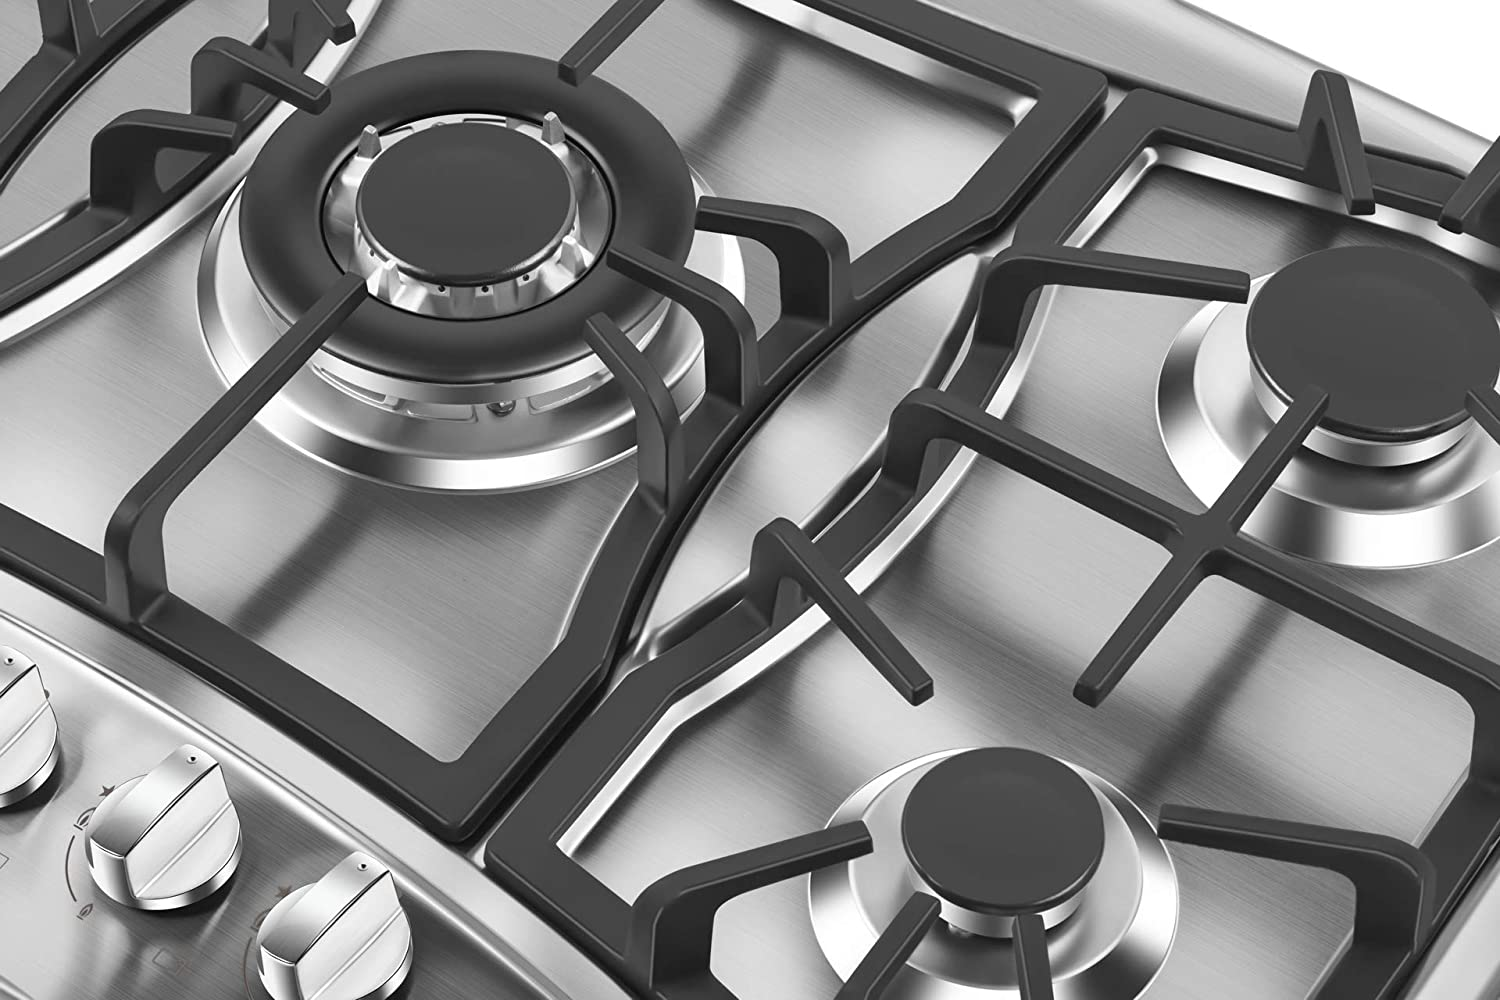 Empava 36 in Gas Cooktop with 5 Italy Sabaf Sealed Burners NG//LPG Convertible Stove in Stainless Steel EMPV-36GS5B90S